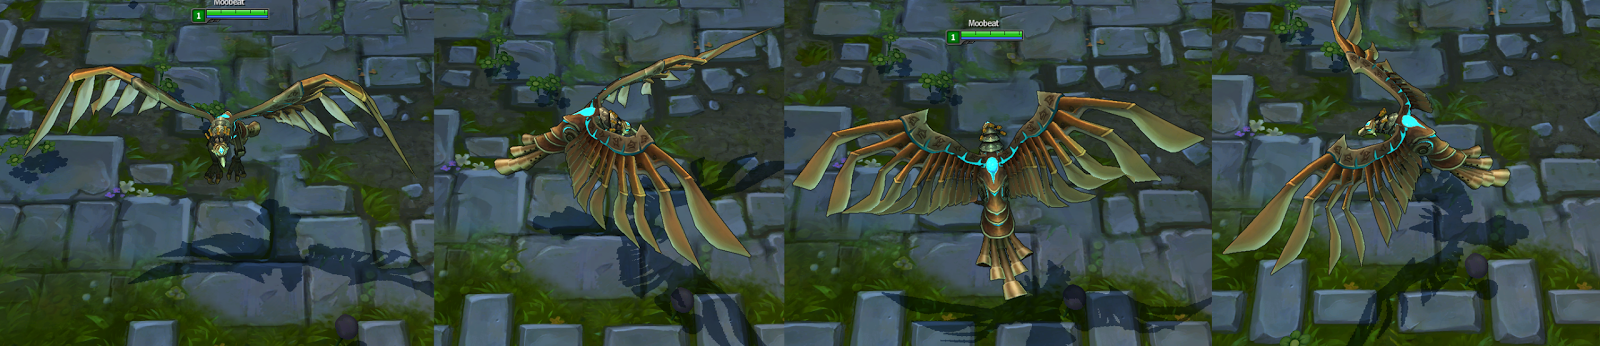 blackfrost anivia ingame - photo #32